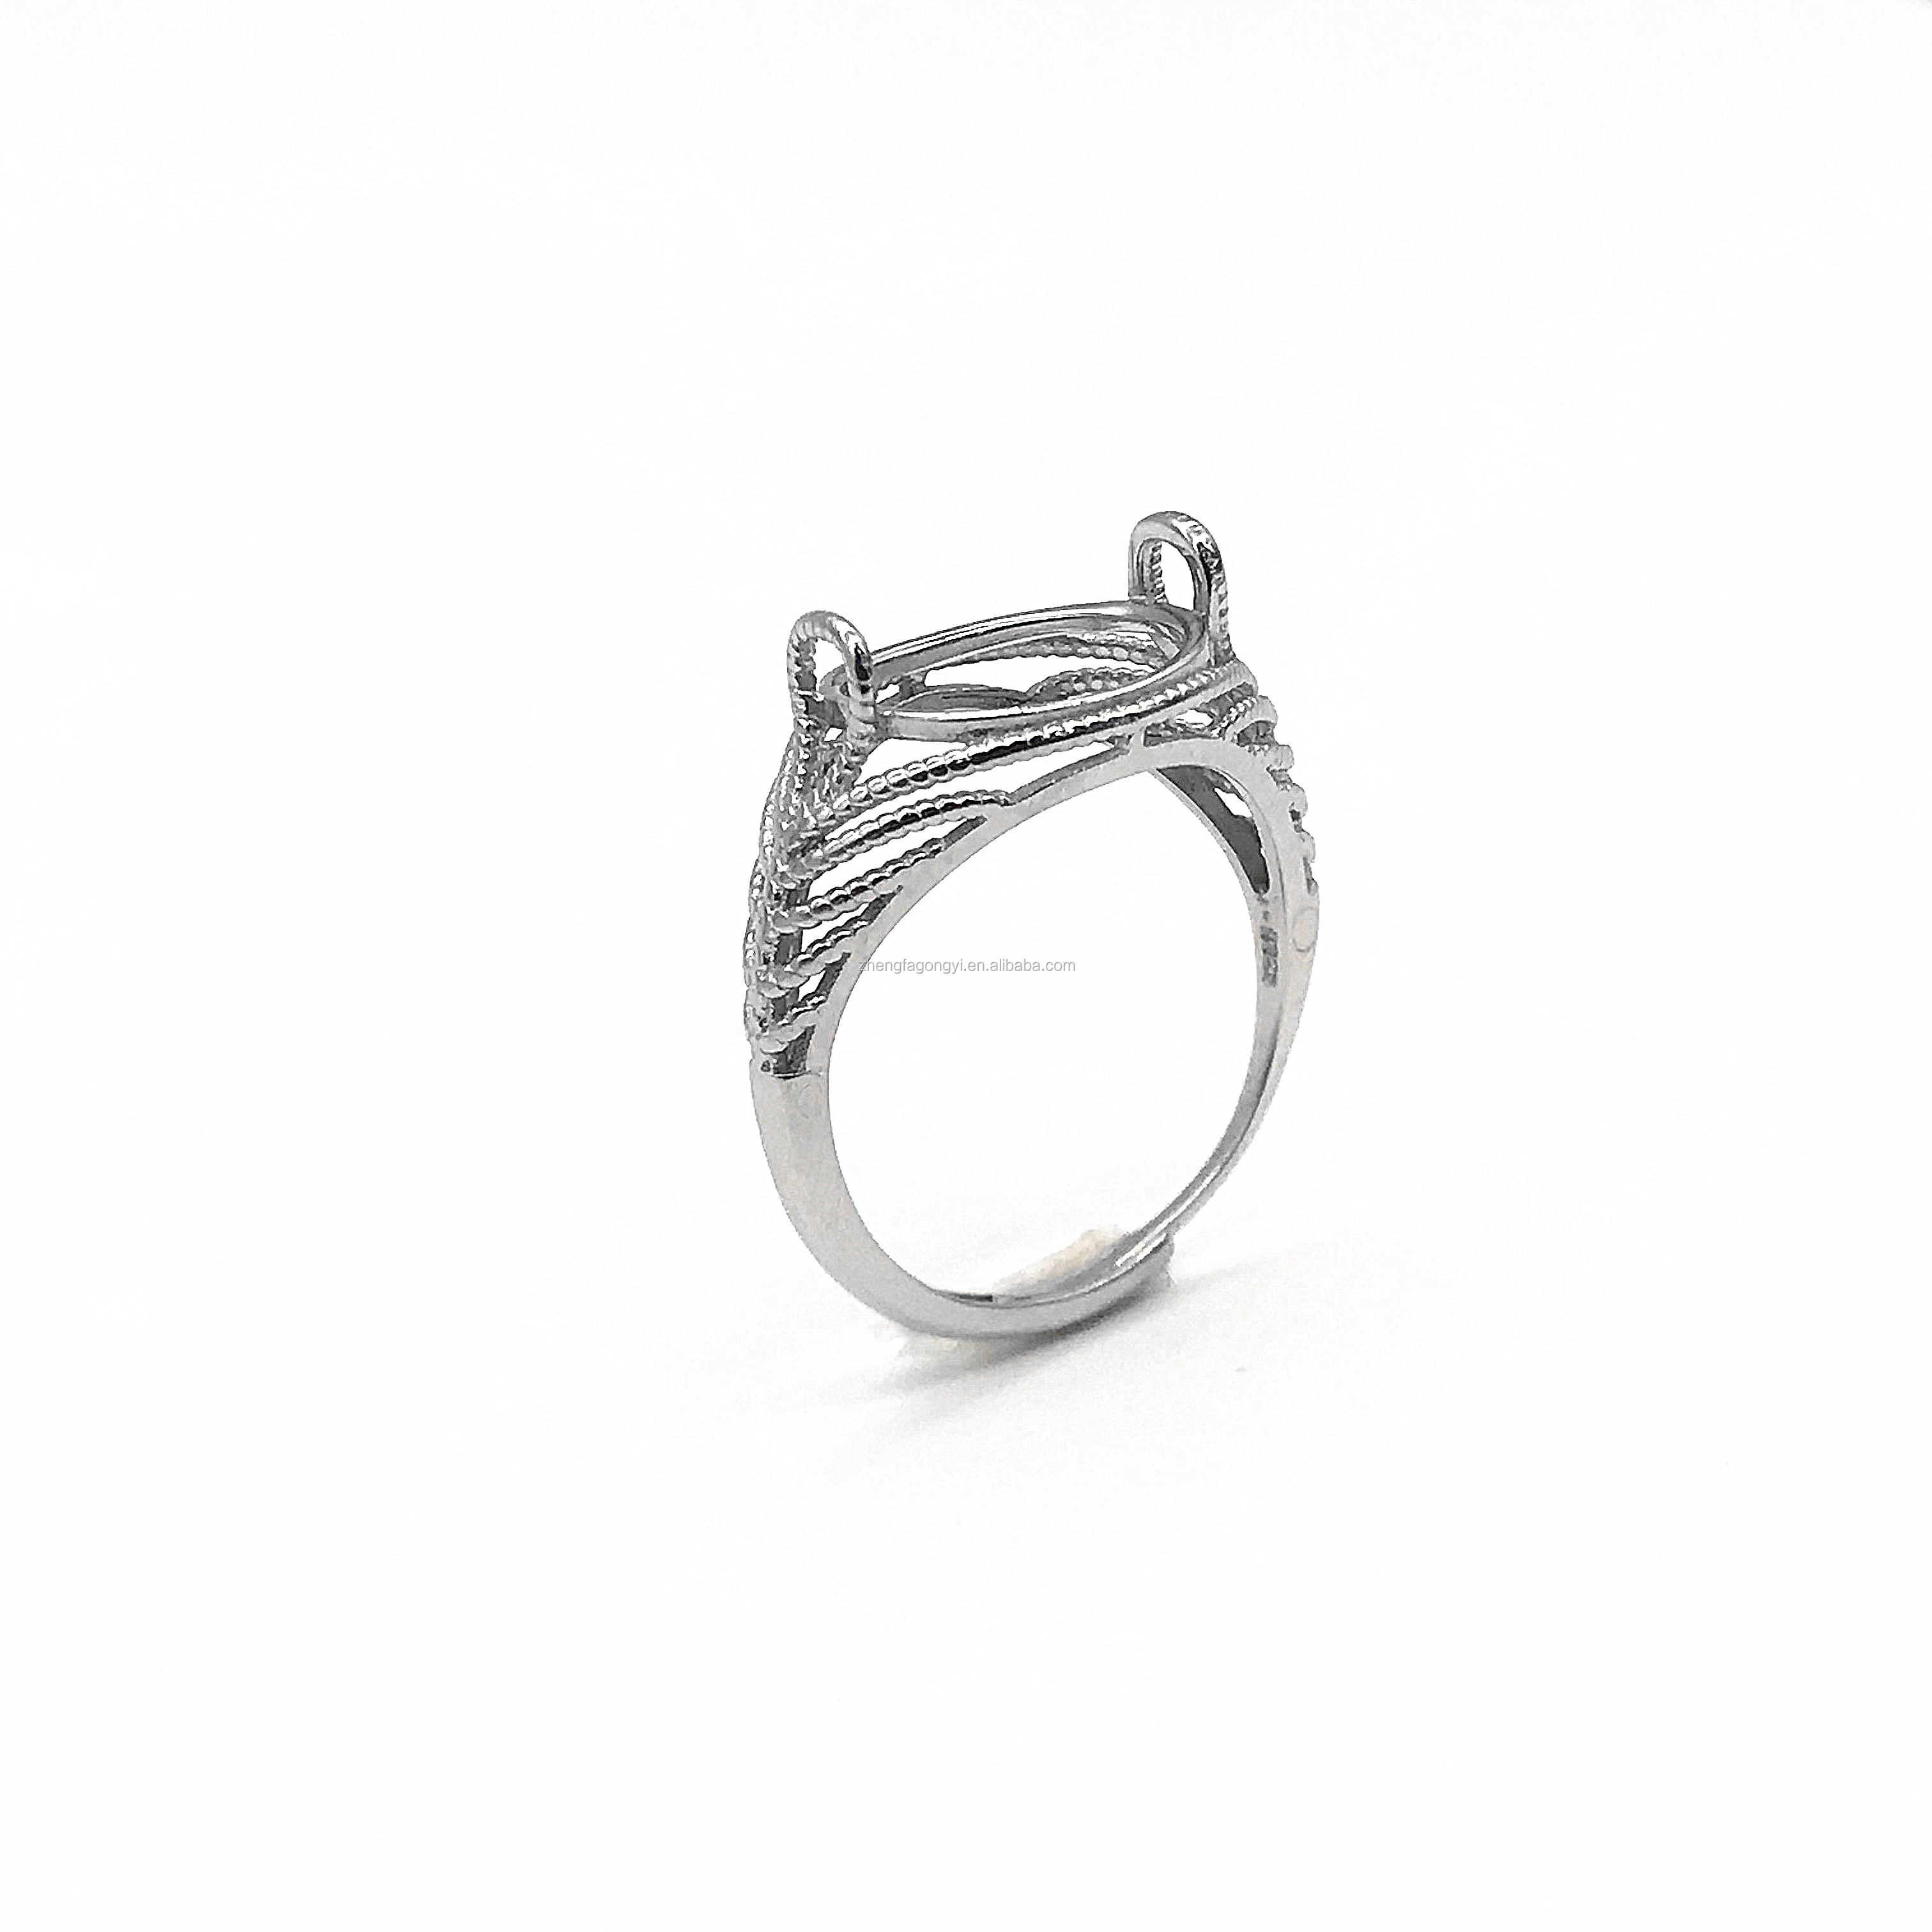 mounting ring with stone in 925 sterling silver for men